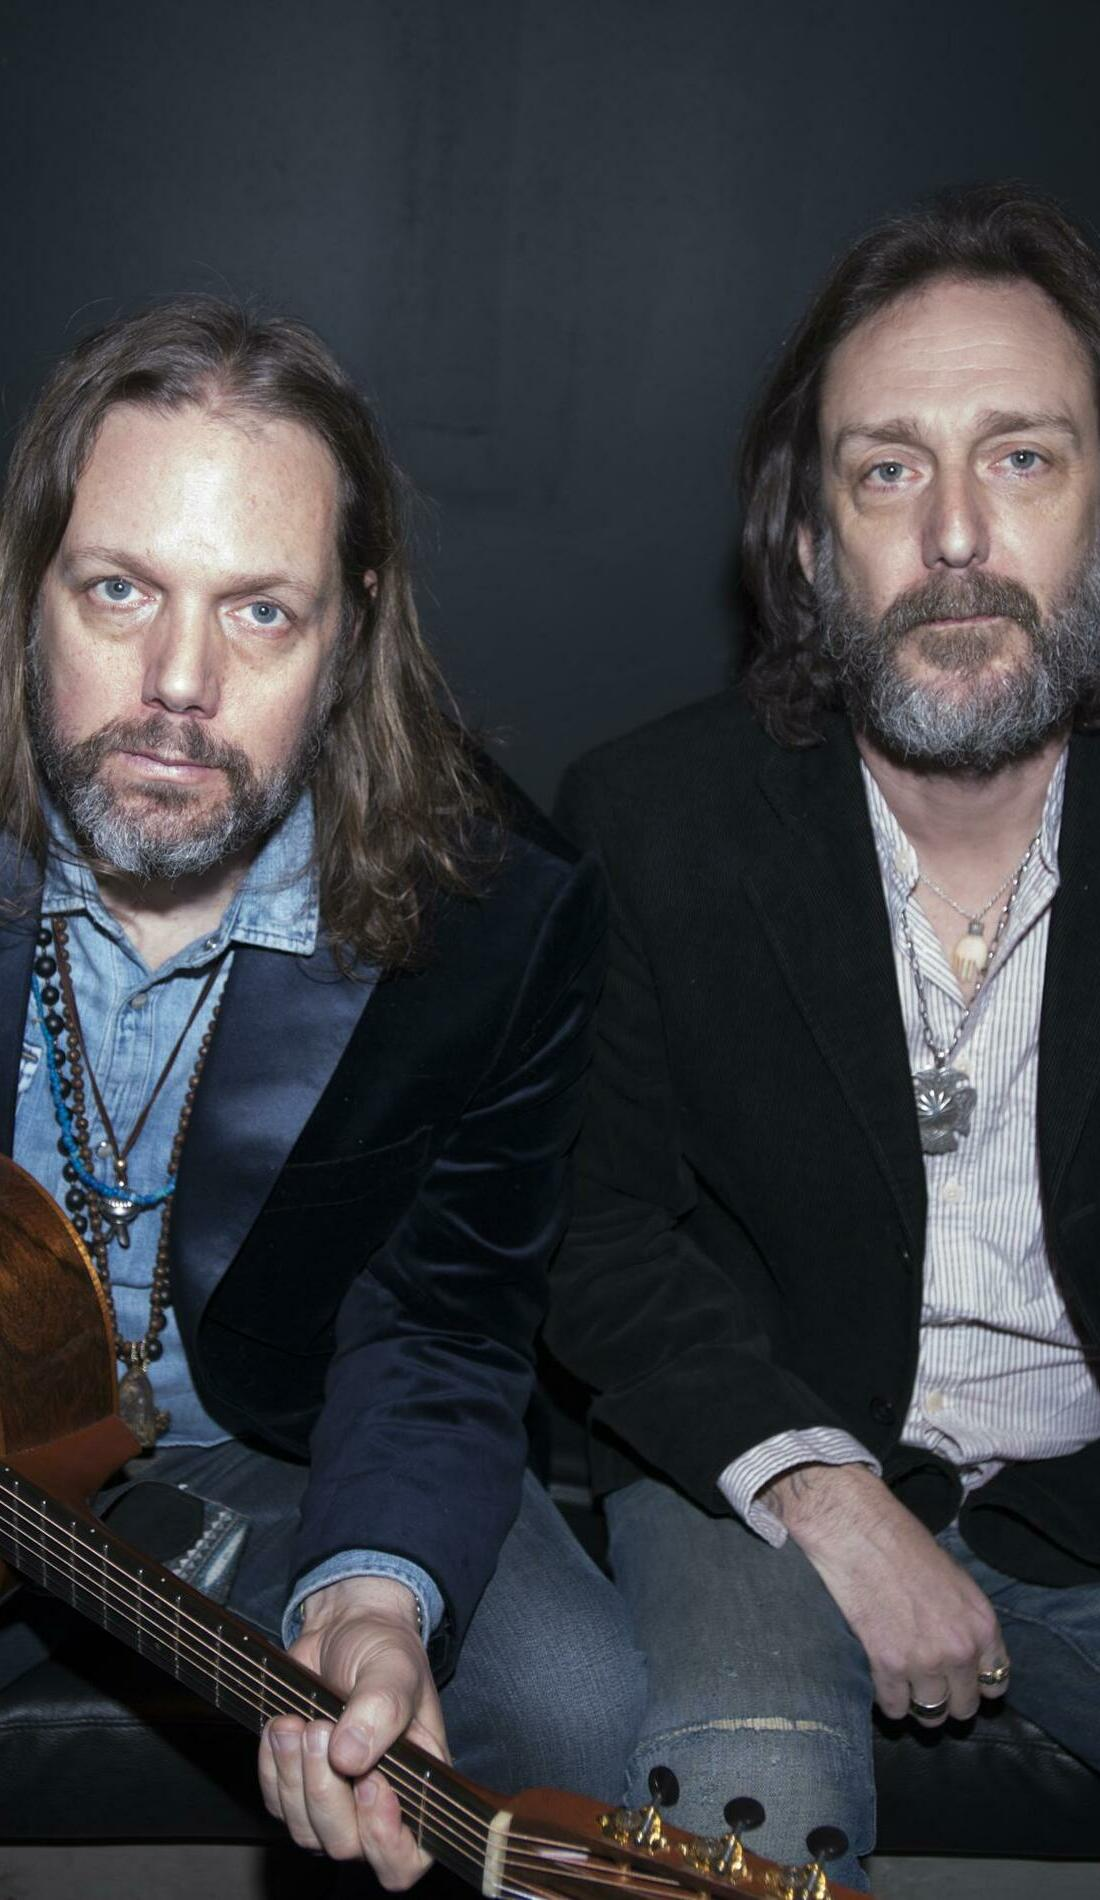 A The Black Crowes live event